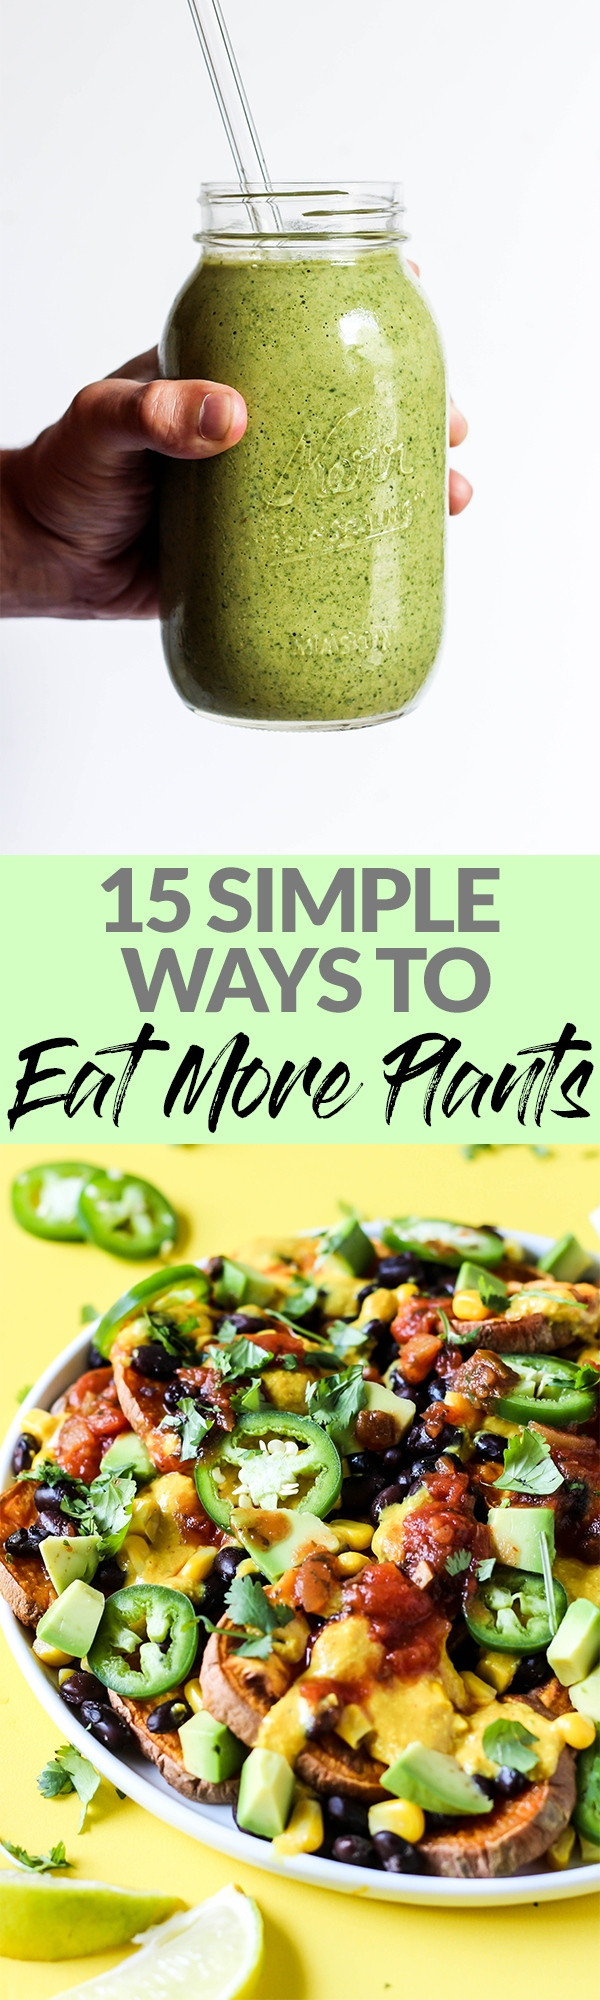 If you want to eat more plants but don't know where to start, here are 15 simple & delicious ways to incorporate plant-based foods into your normal meals!